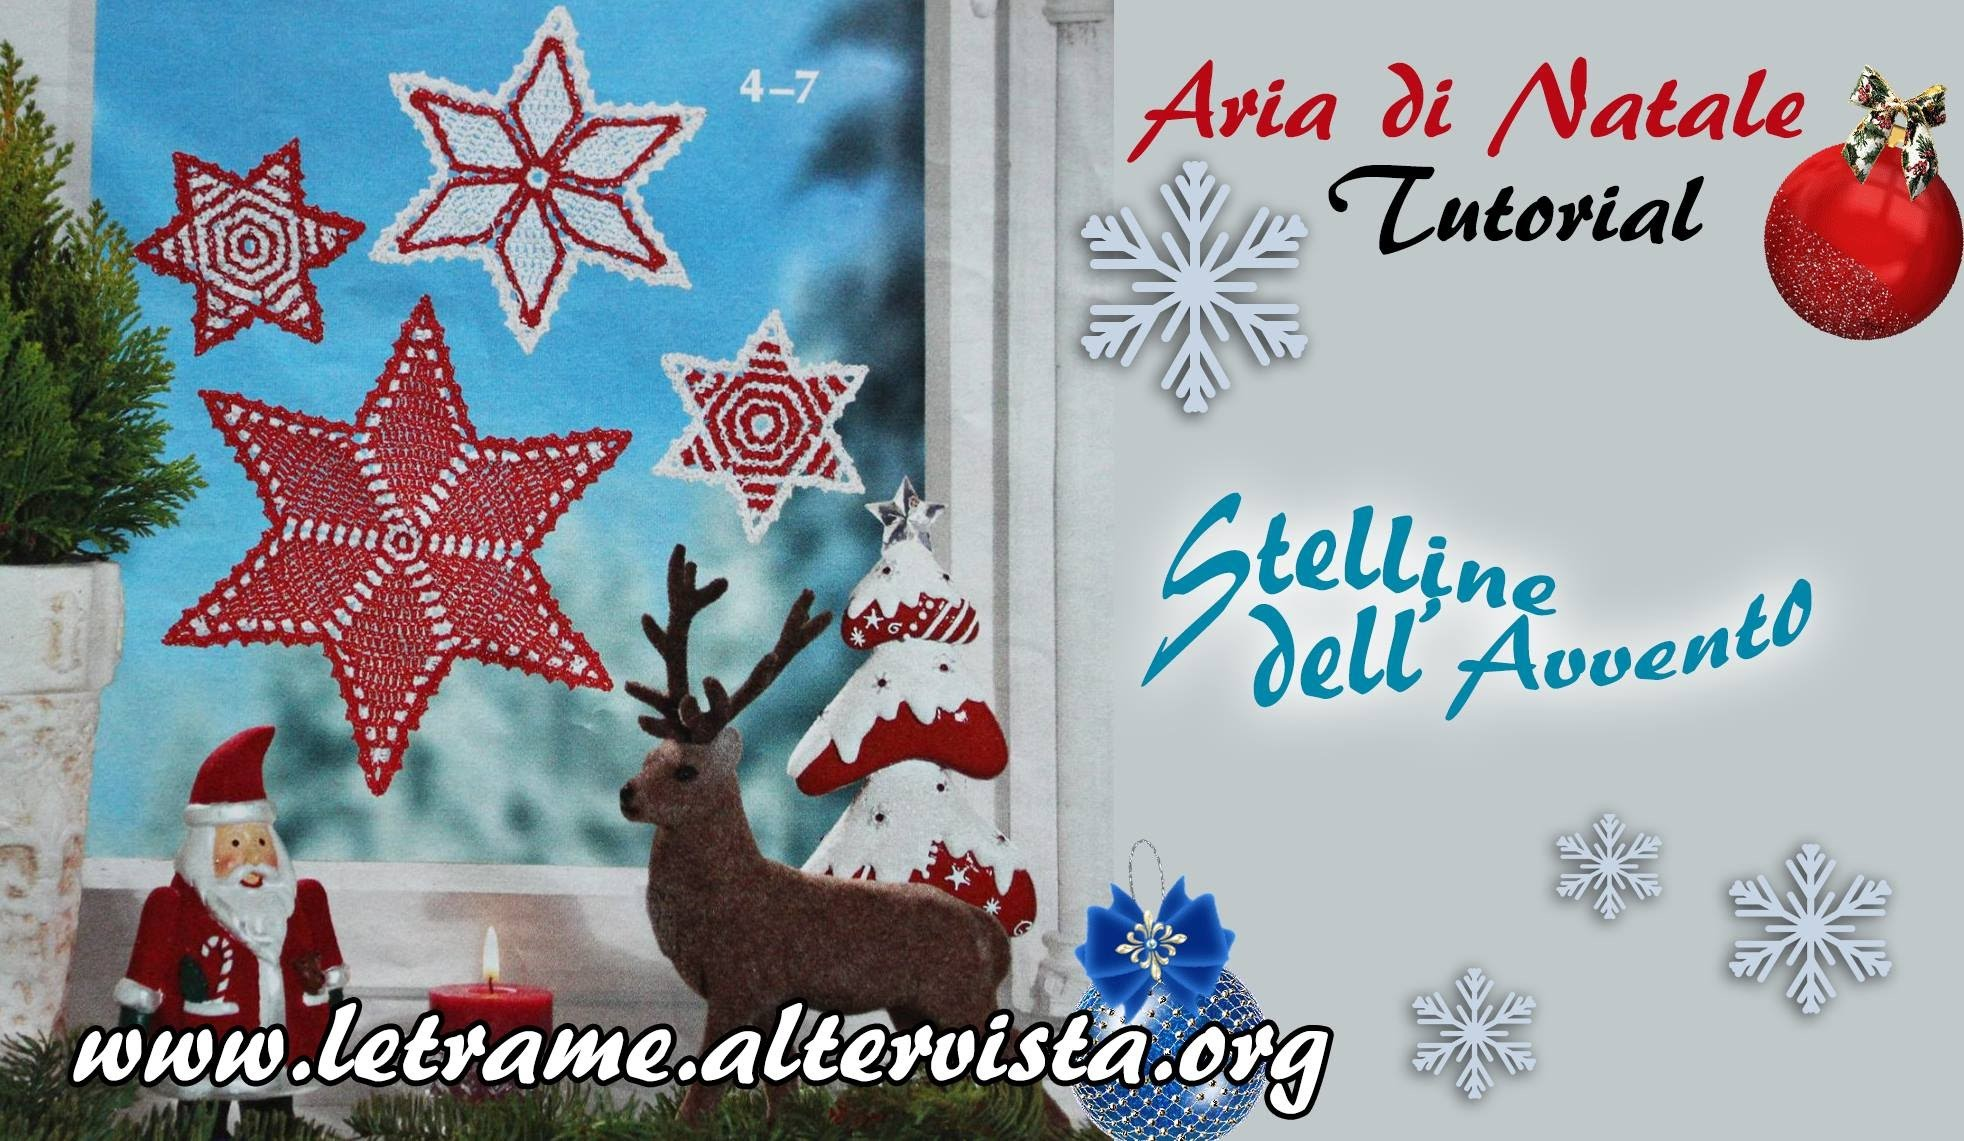 Tutorial Stella natalizia all' uncinetto (crochet) 2.2